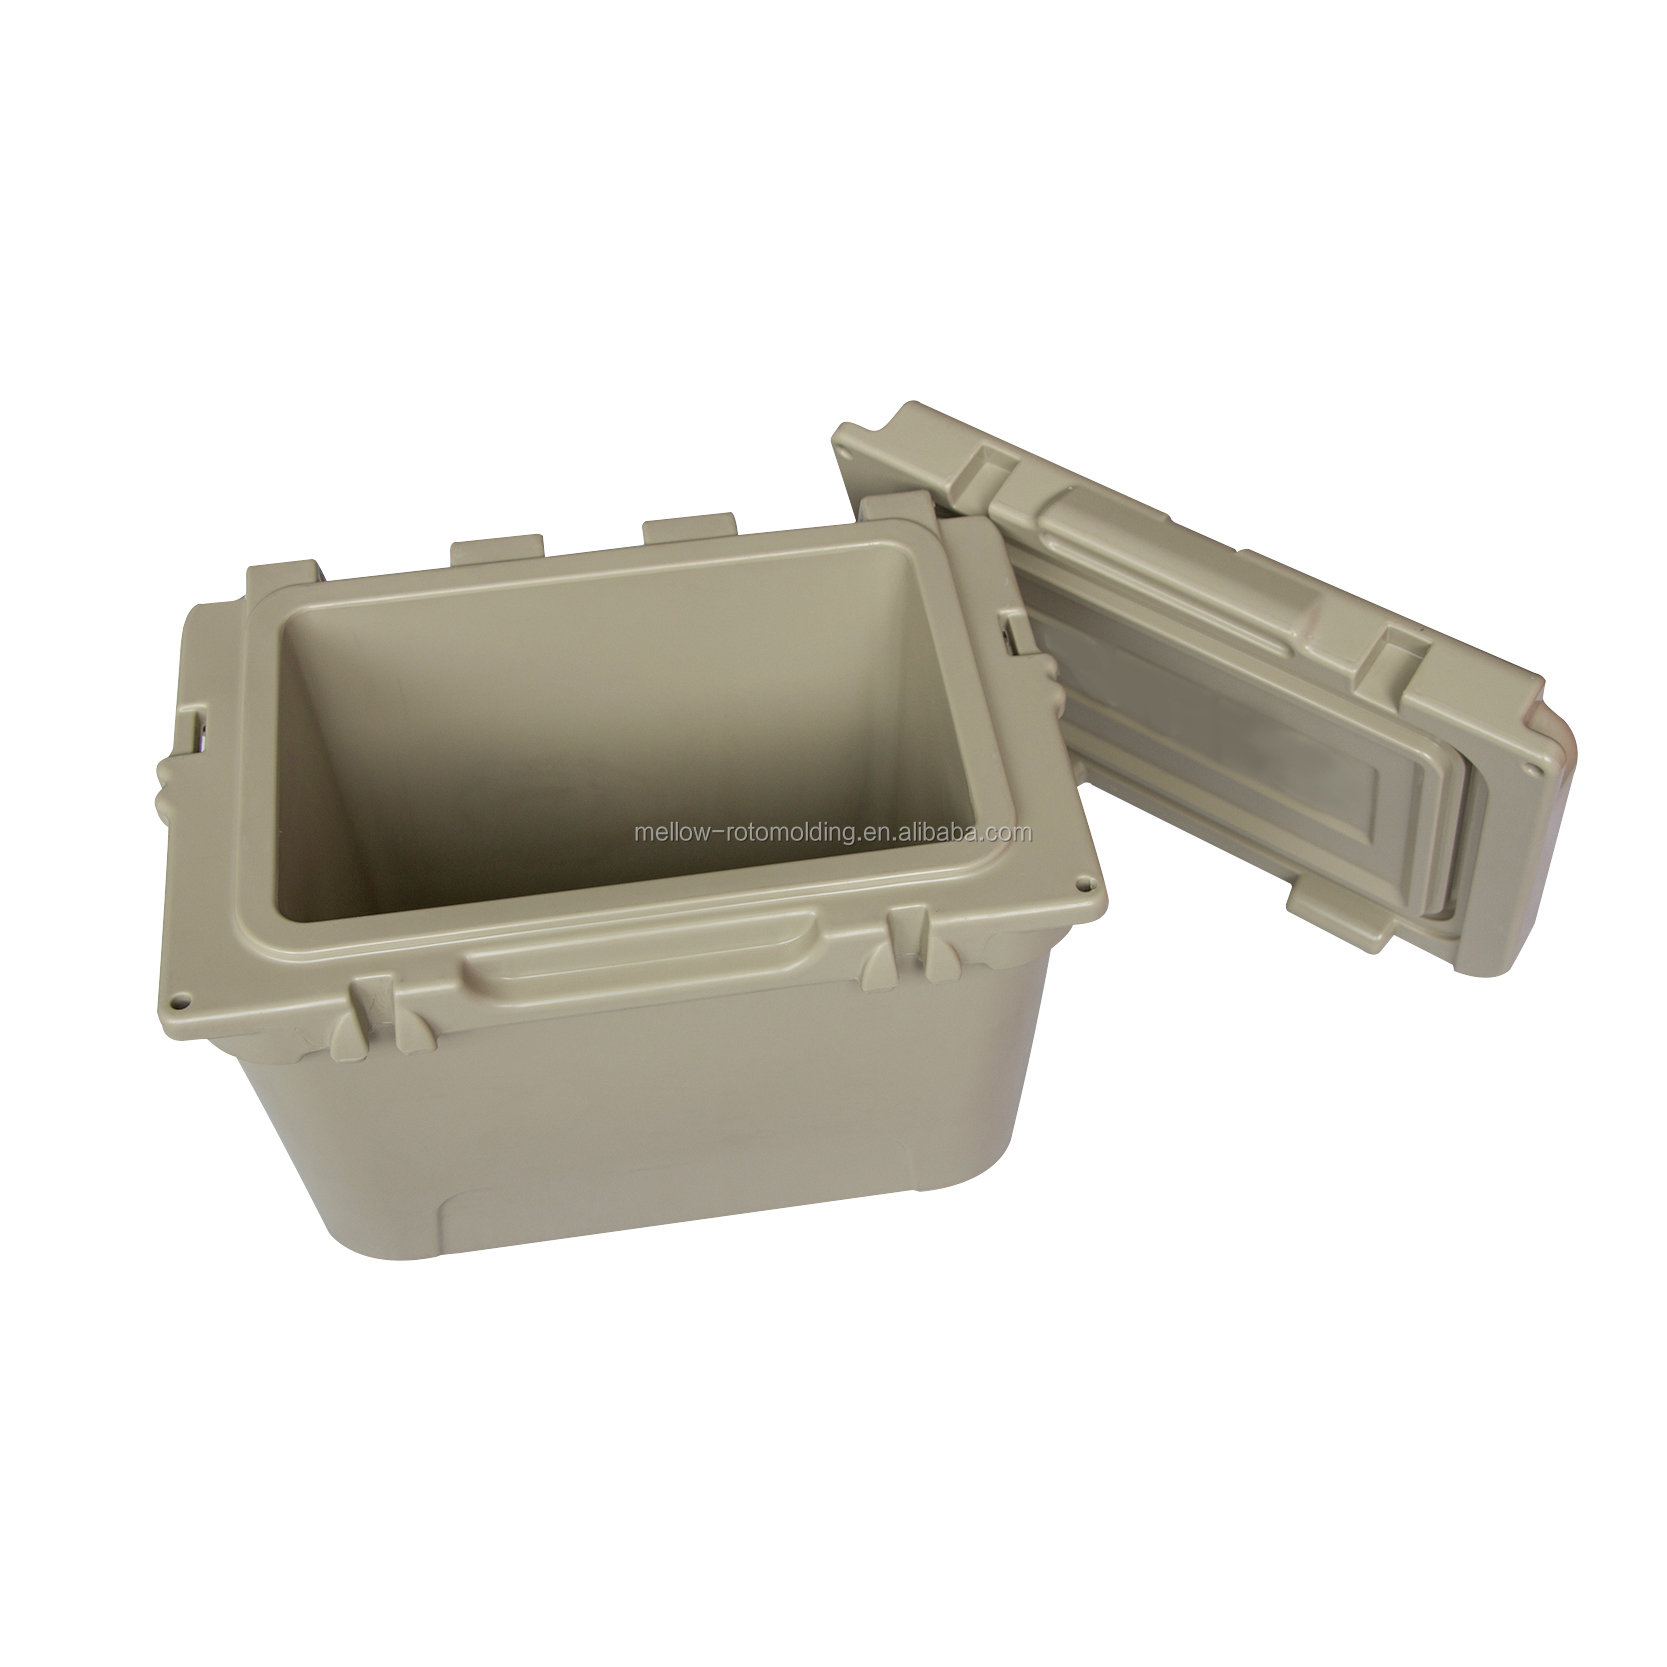 rotational molded 15L plastic cooler box